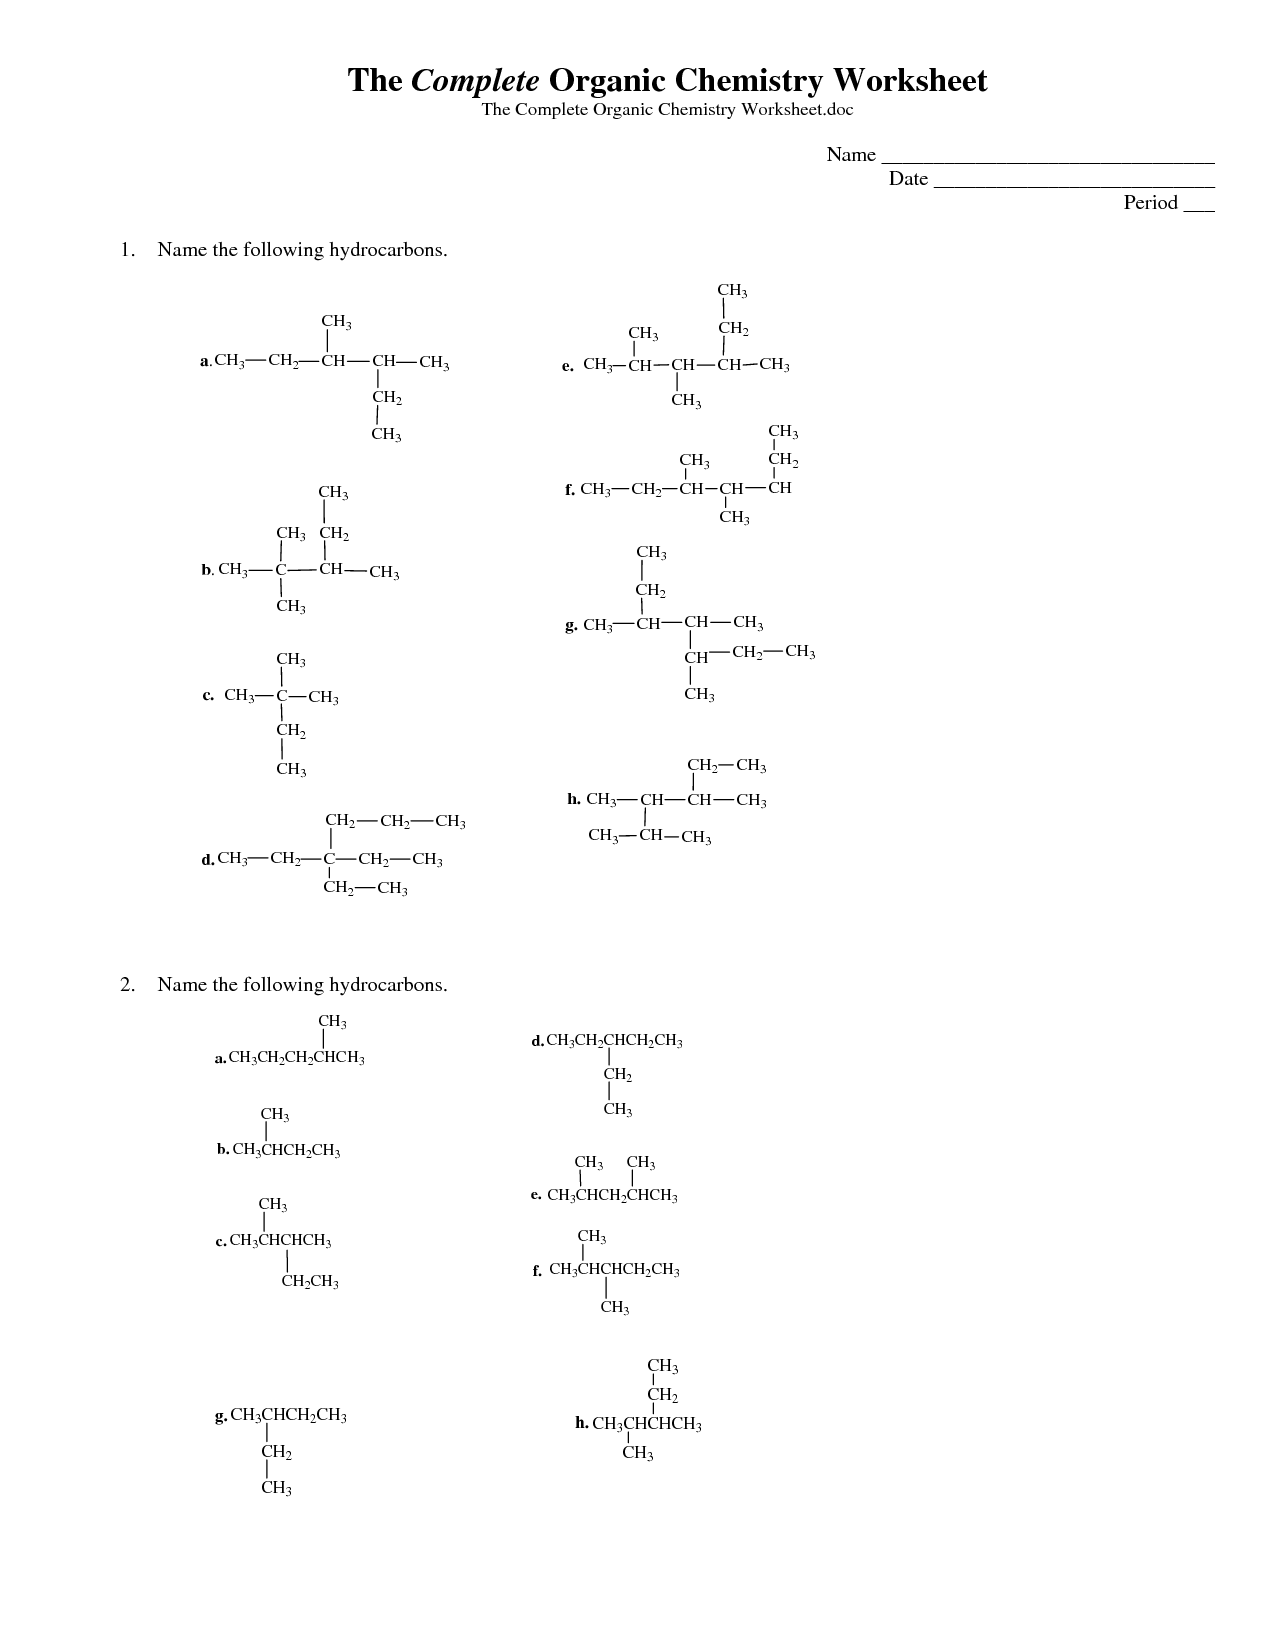 Organic Chemistry Infographic The Complete Organic Chemistry Worksheet